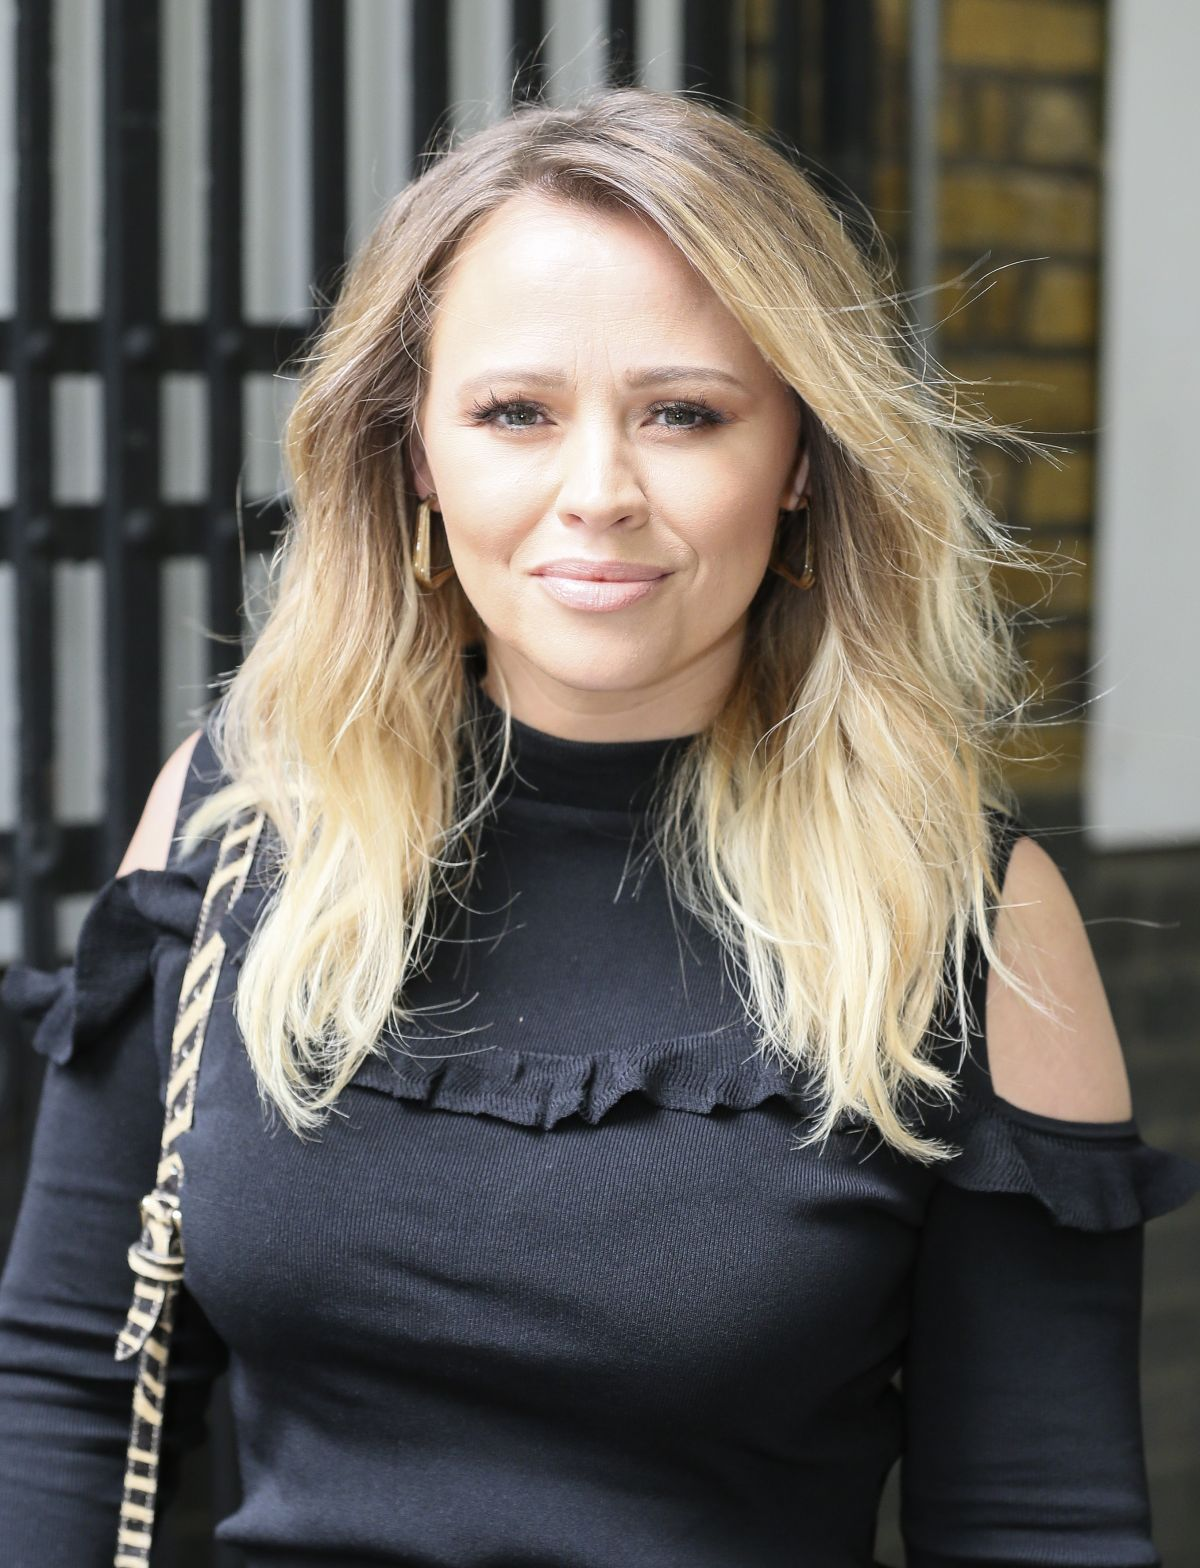 Pictures Kimberley Walsh nude (11 foto and video), Sexy, Hot, Feet, panties 2018